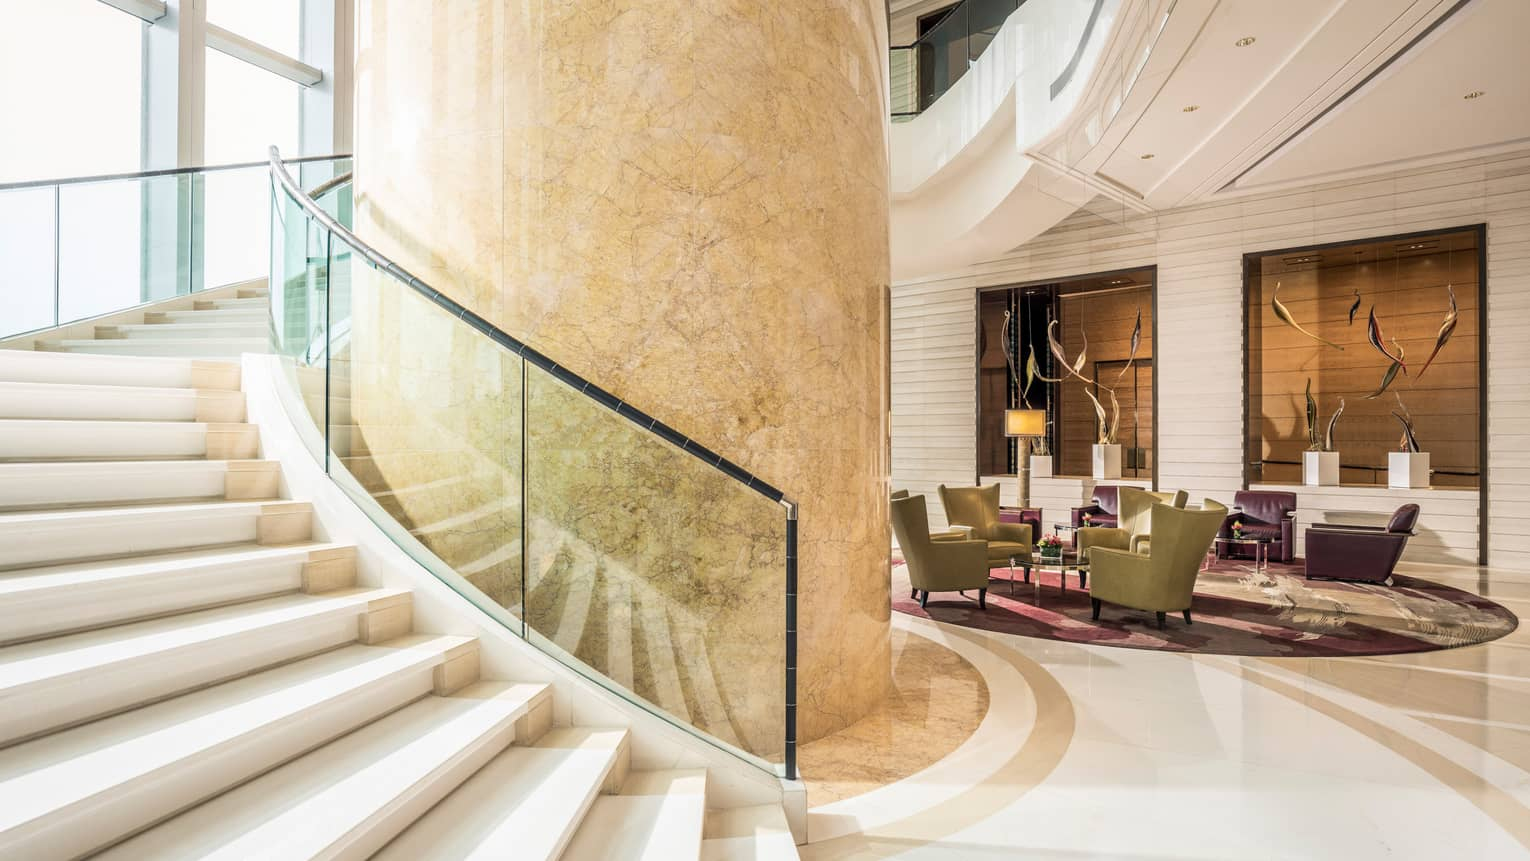 Large beige marble pillar, sweeping staircase with glass balcony in Four Seasons Hotel Hong Kong lobby